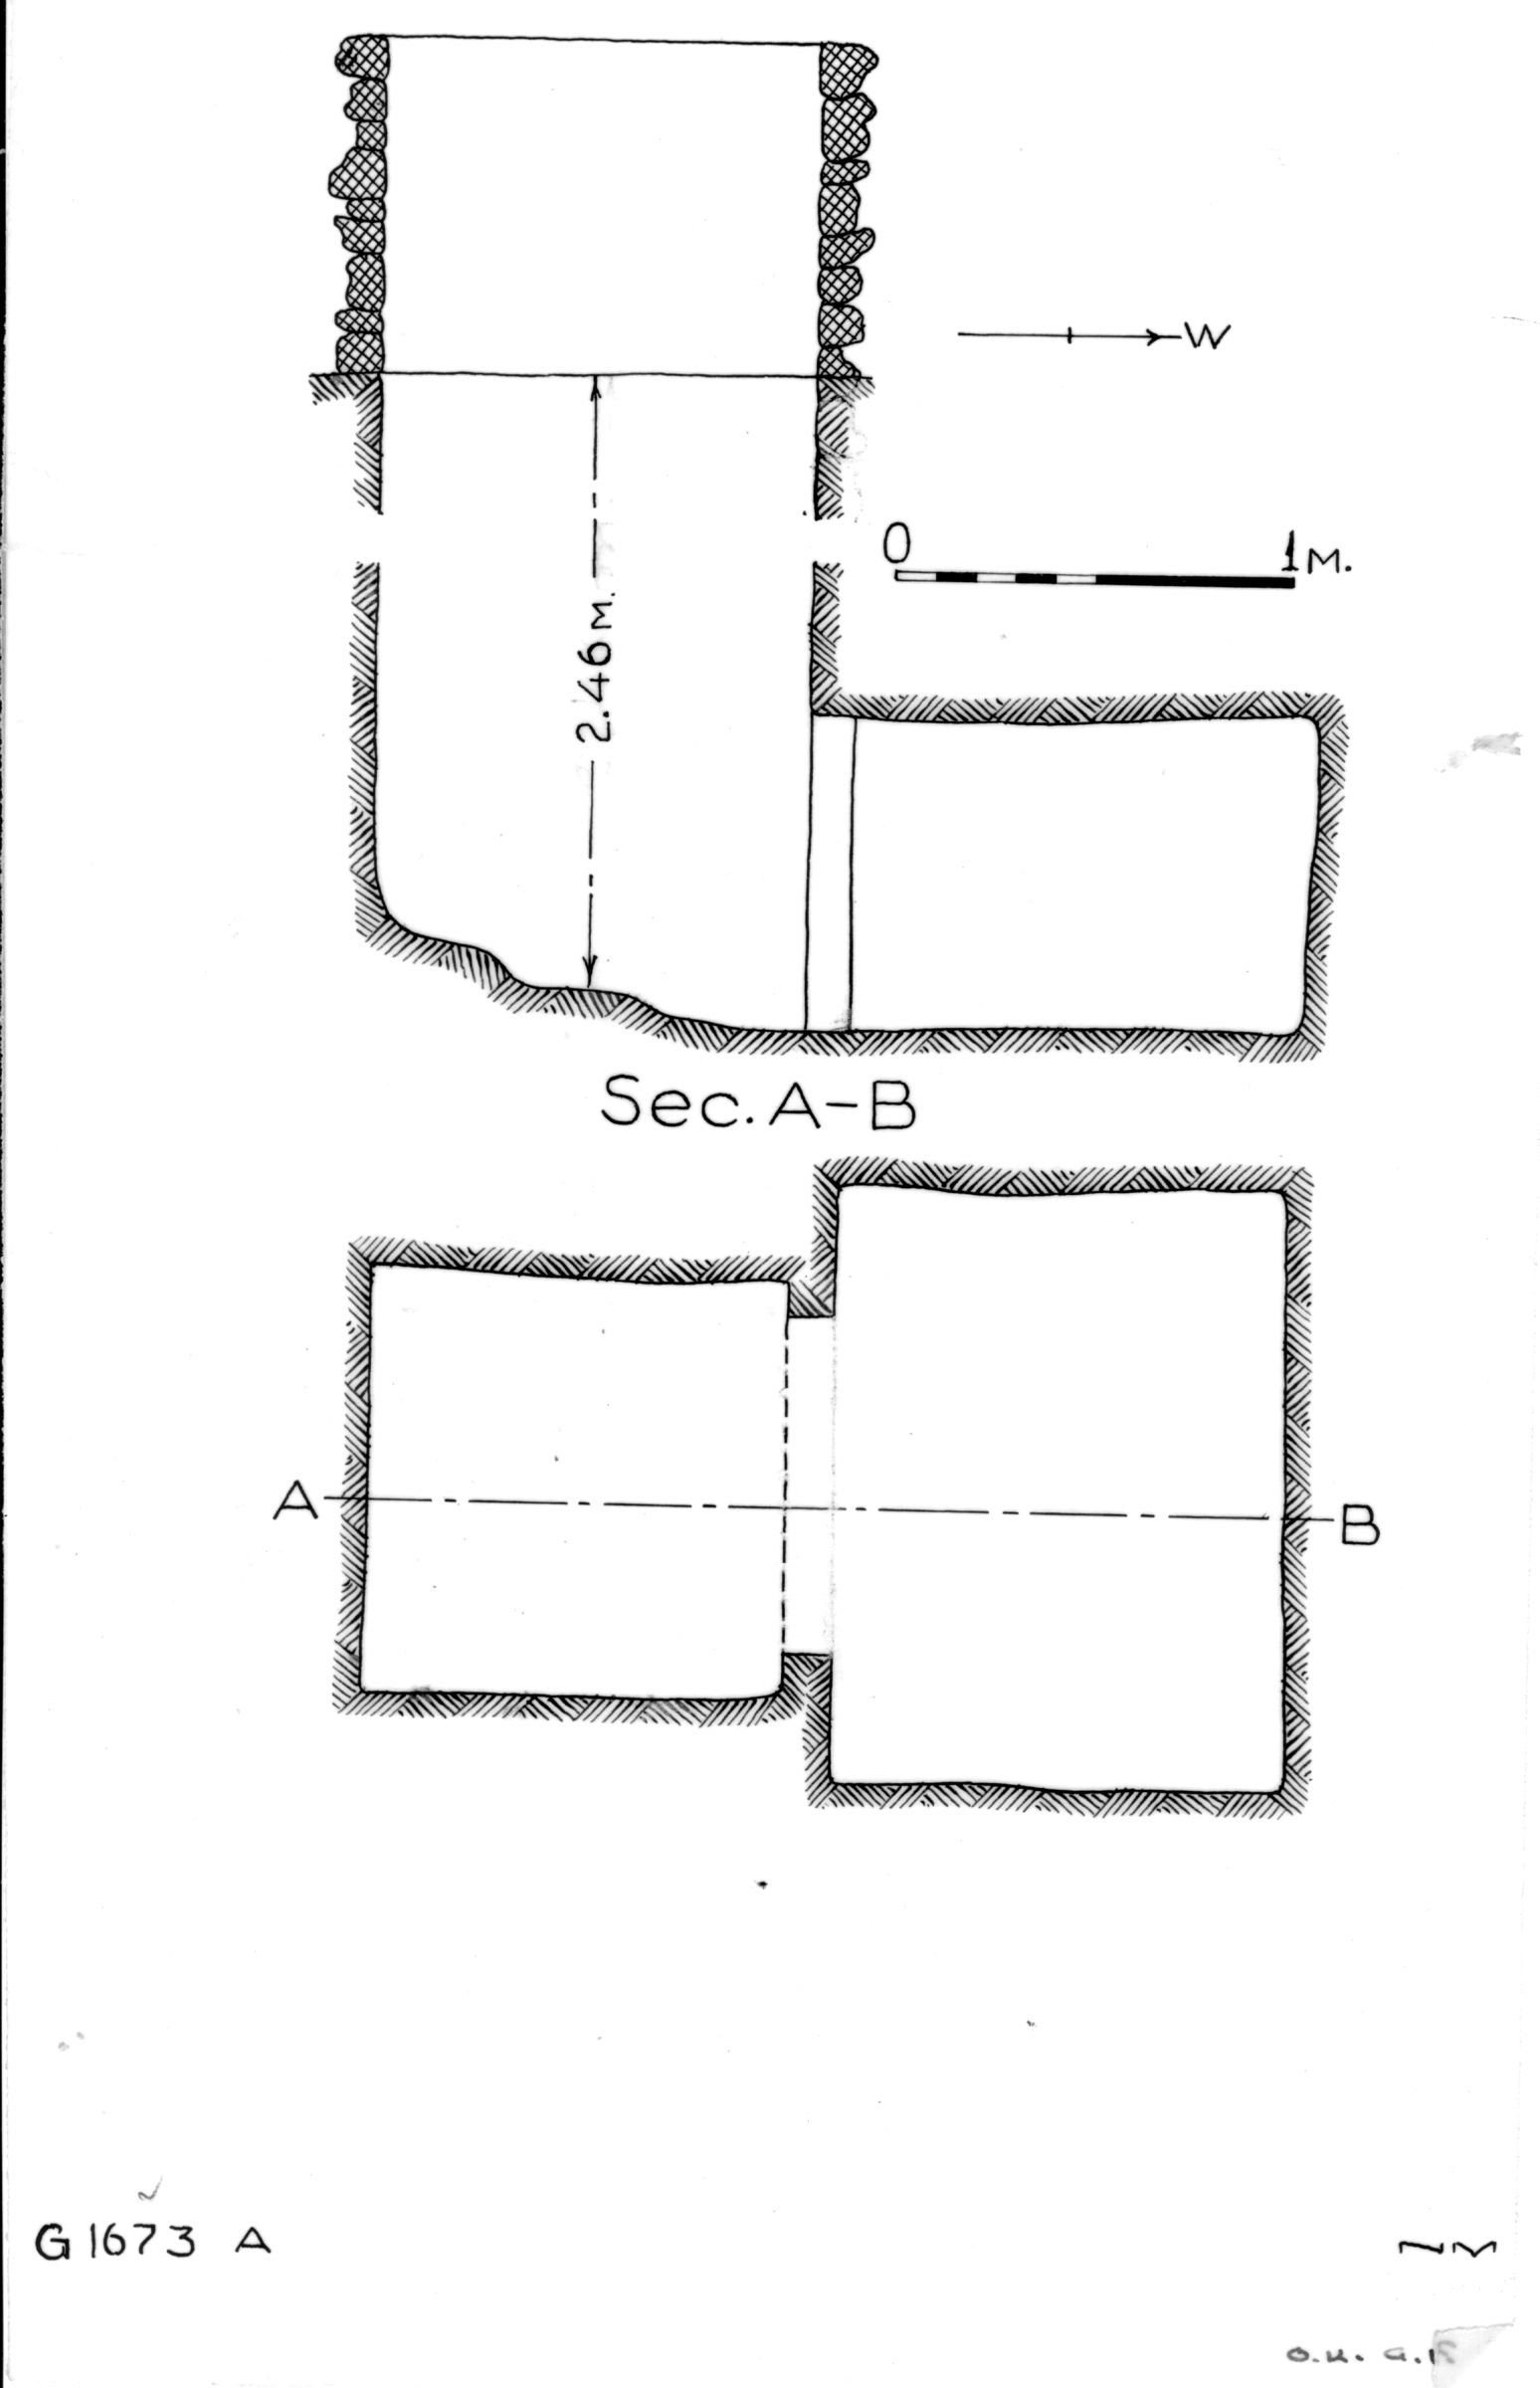 Maps and plans: G 1673, Shaft A